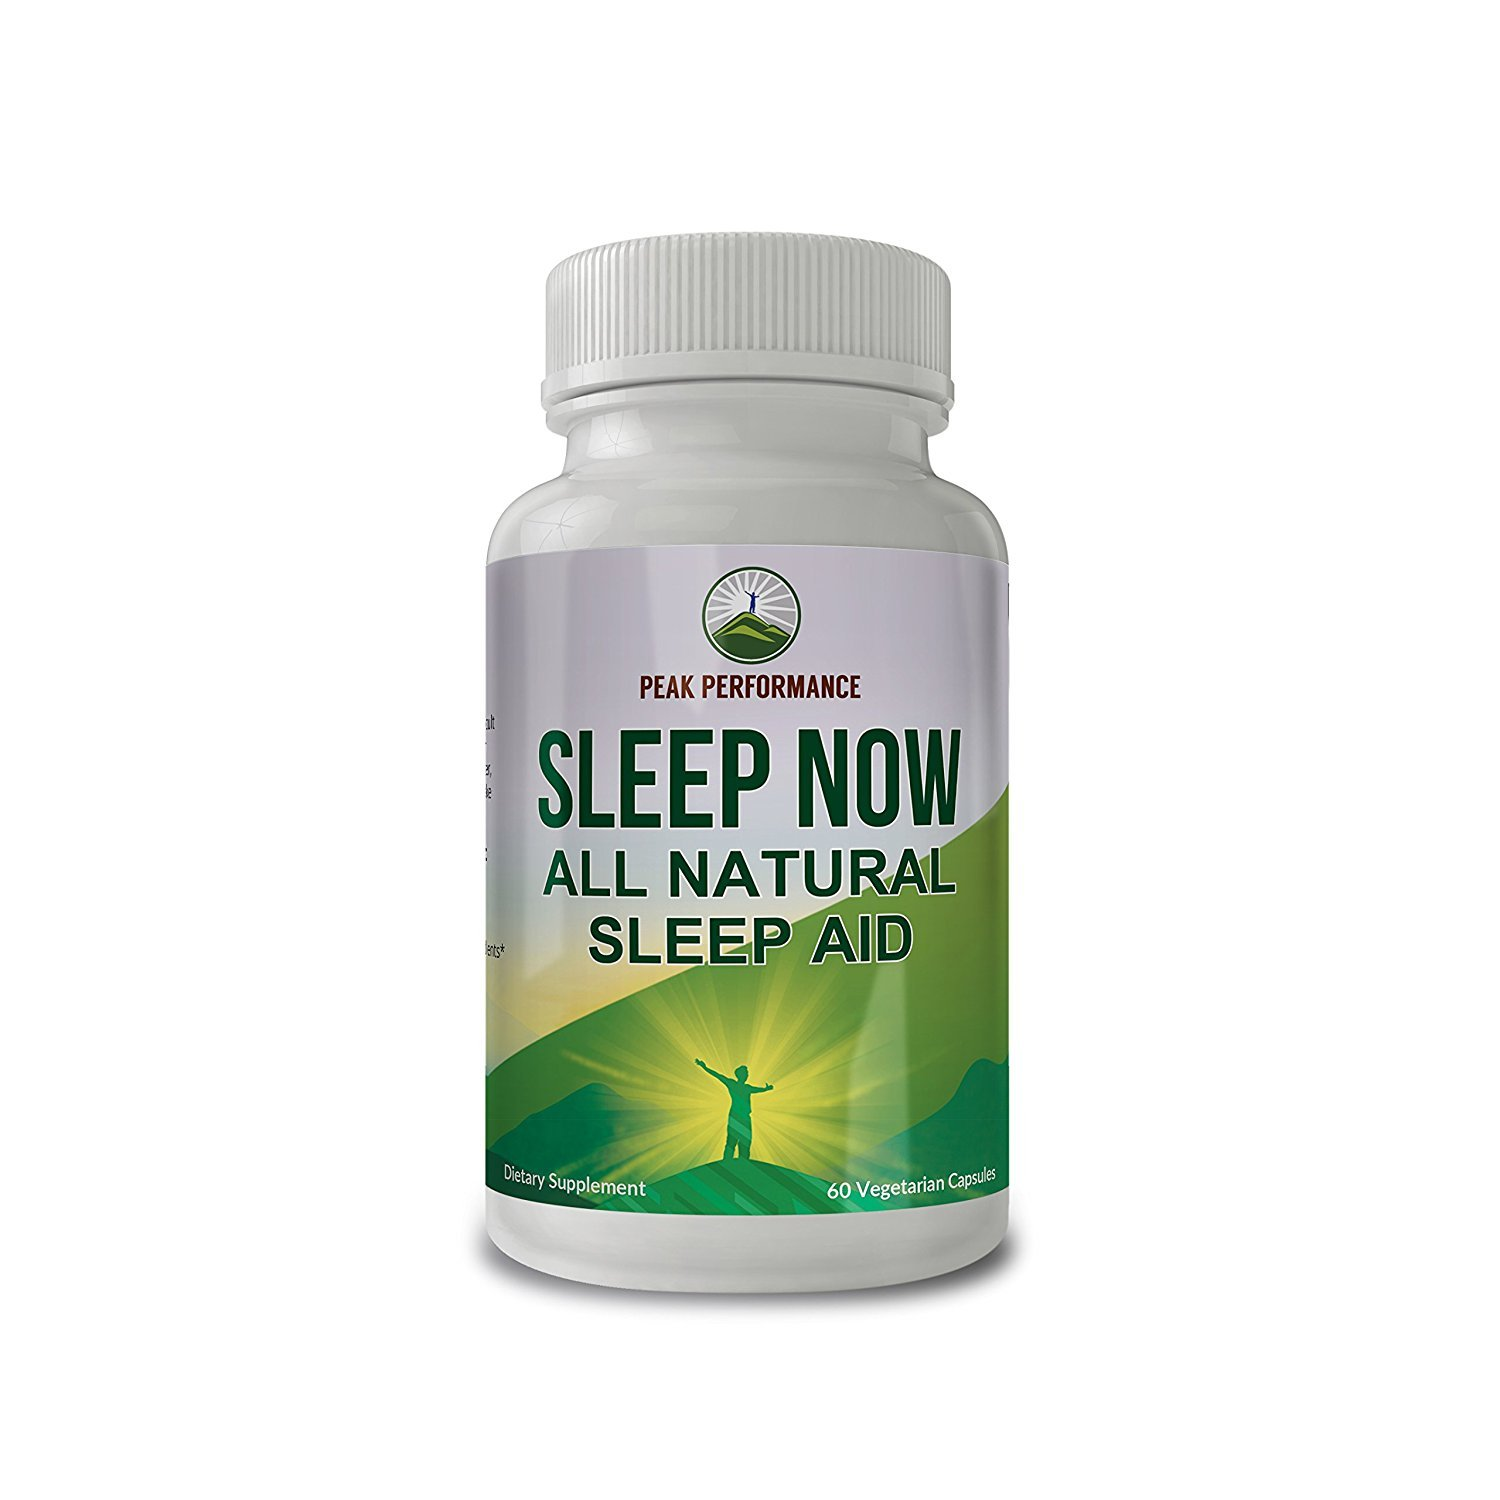 Sleep Now - All Natural Non Habit Forming Sleep AID Supplement by Peak Performance for Calm Sleep, Wake Up Refreshed. with Chamomile, GABA, Melatonin, Valerian Root, Lemon Balm and More